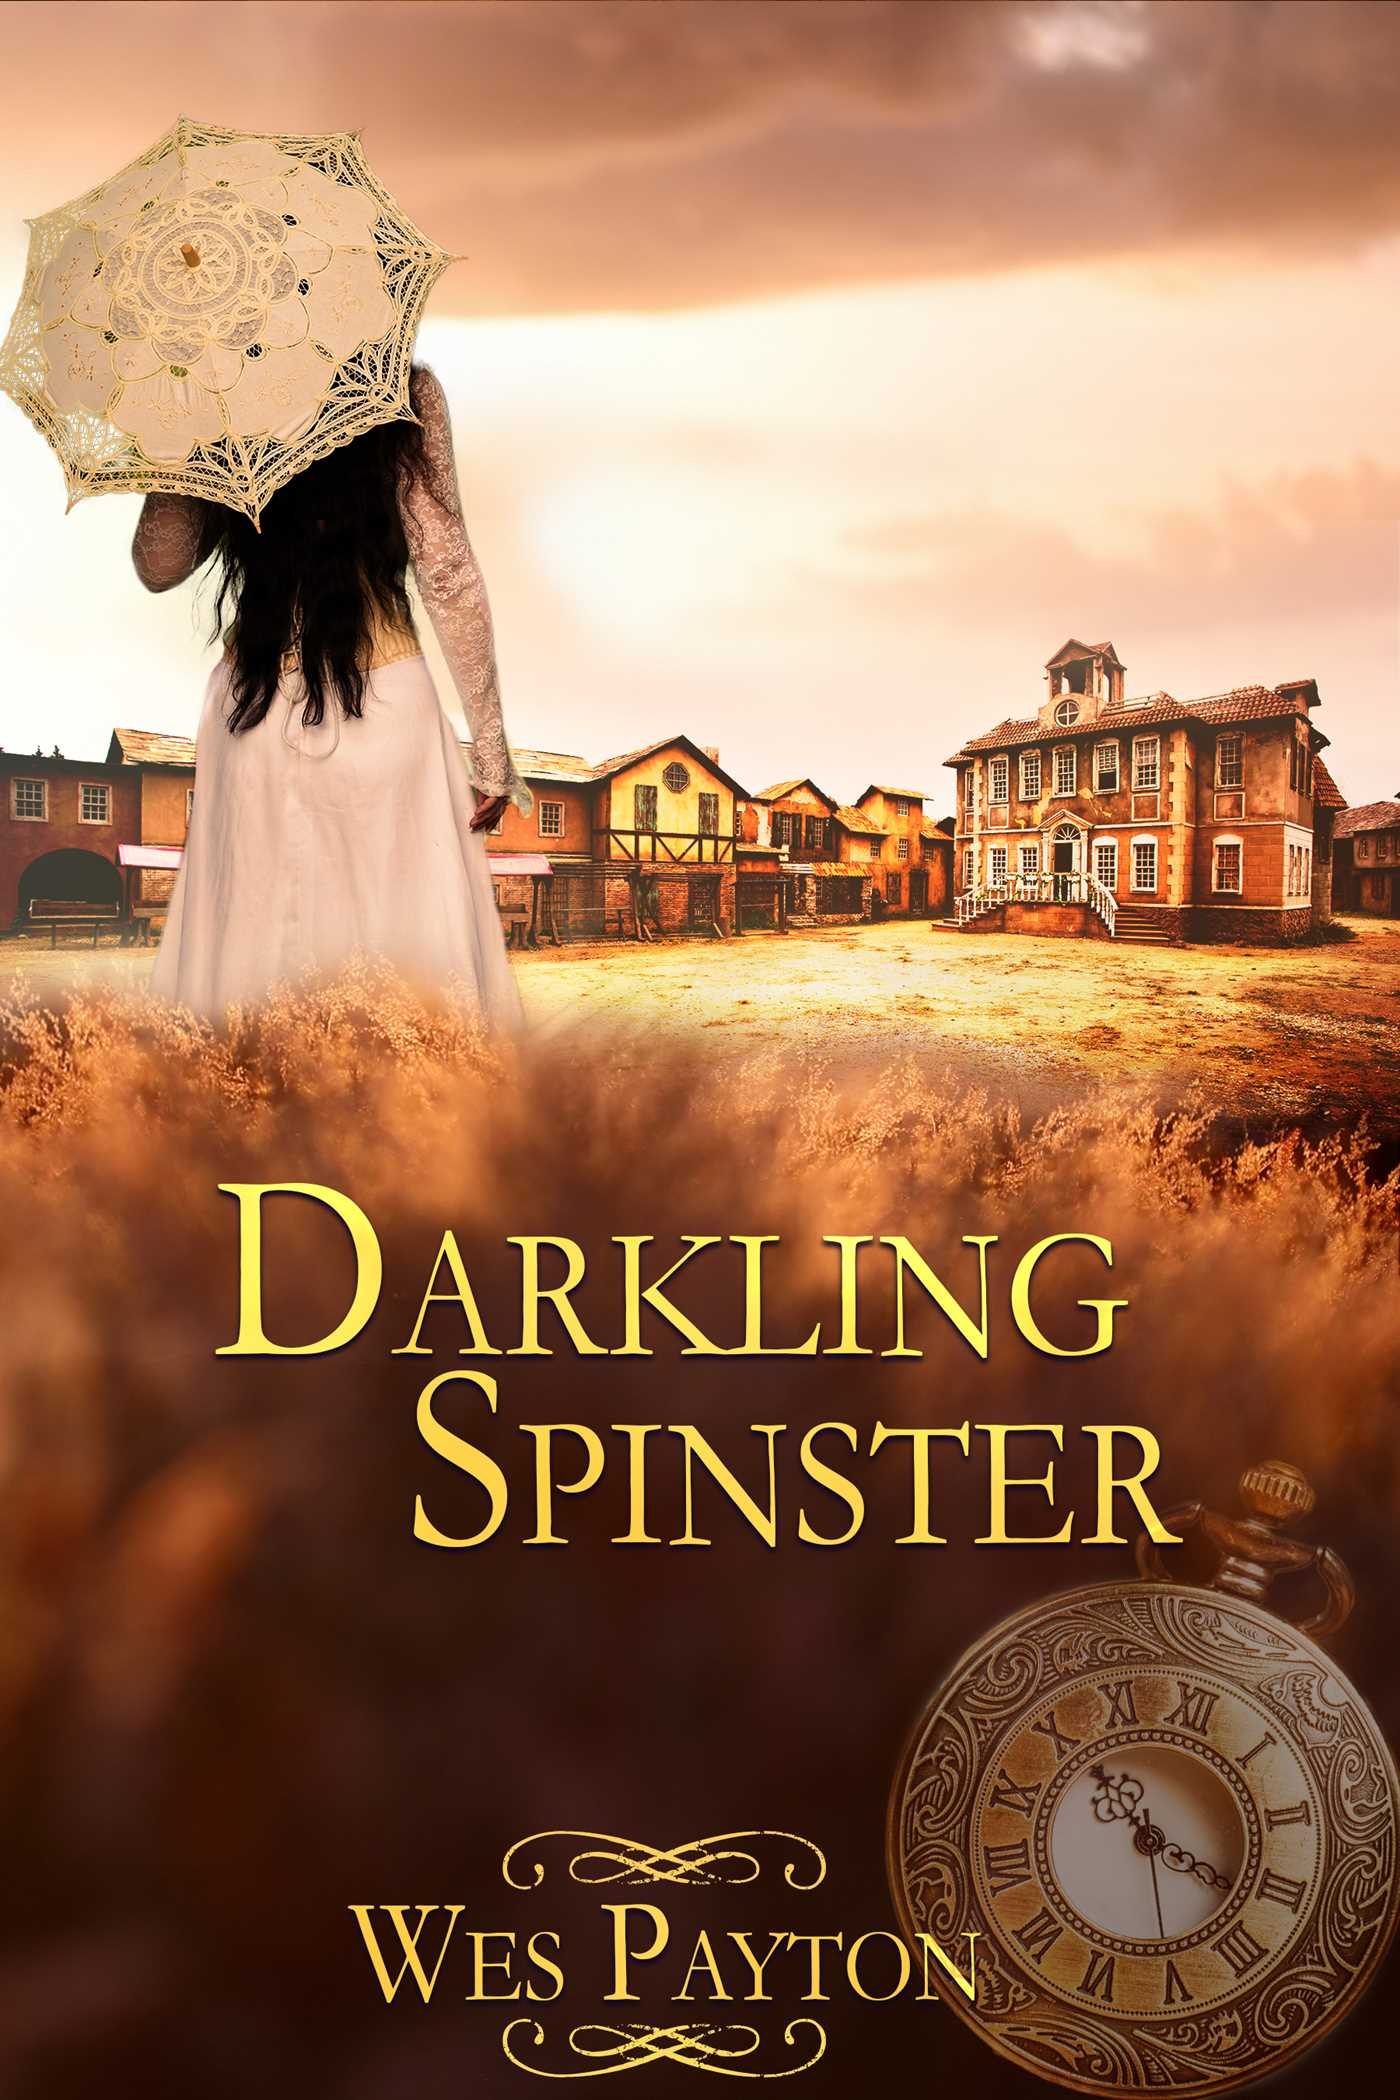 Darkling spinster 9781682992555 hr